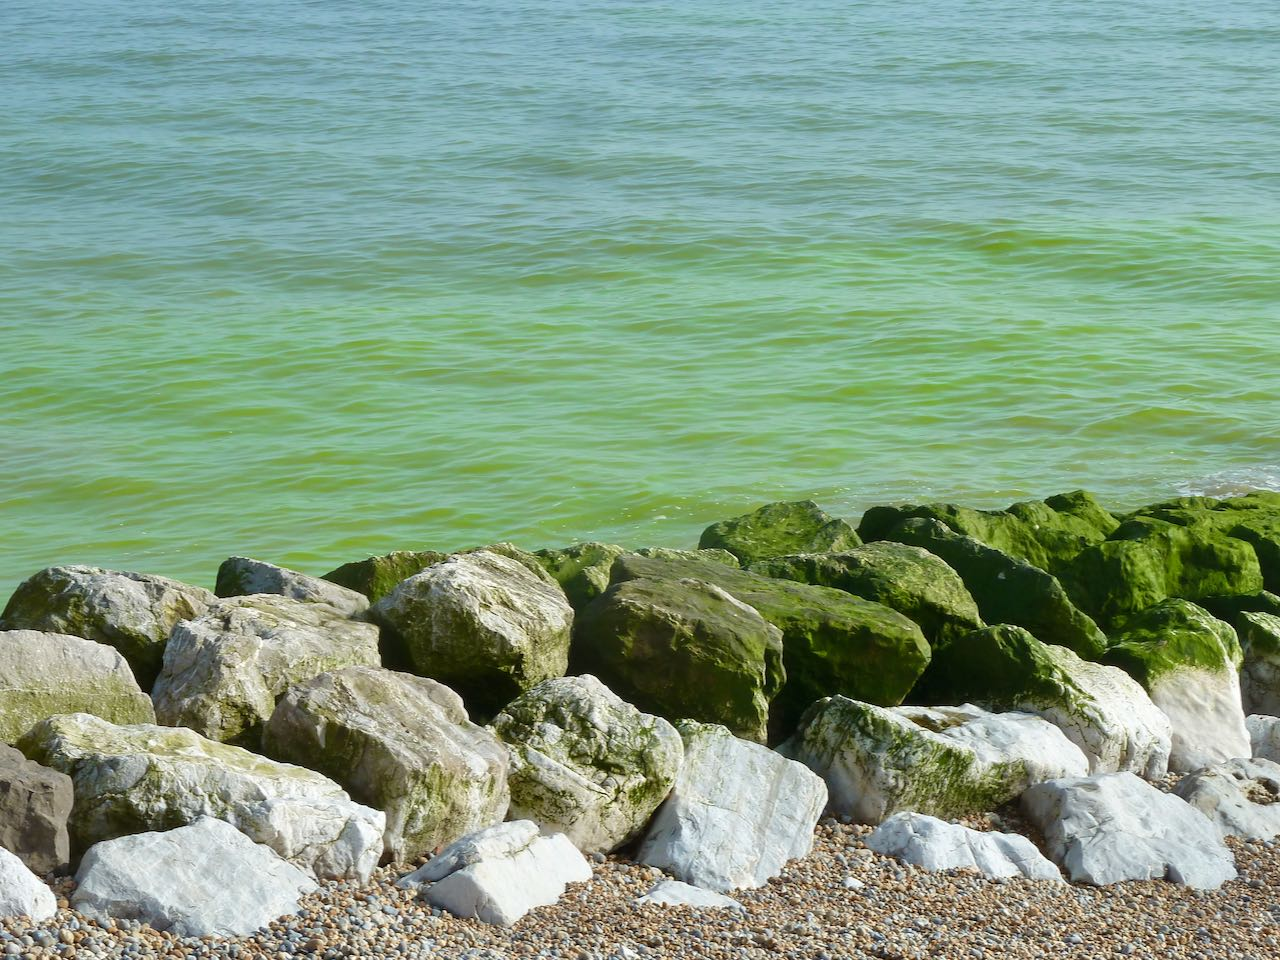 Green sea algae seen off St Leonards, East Sussex